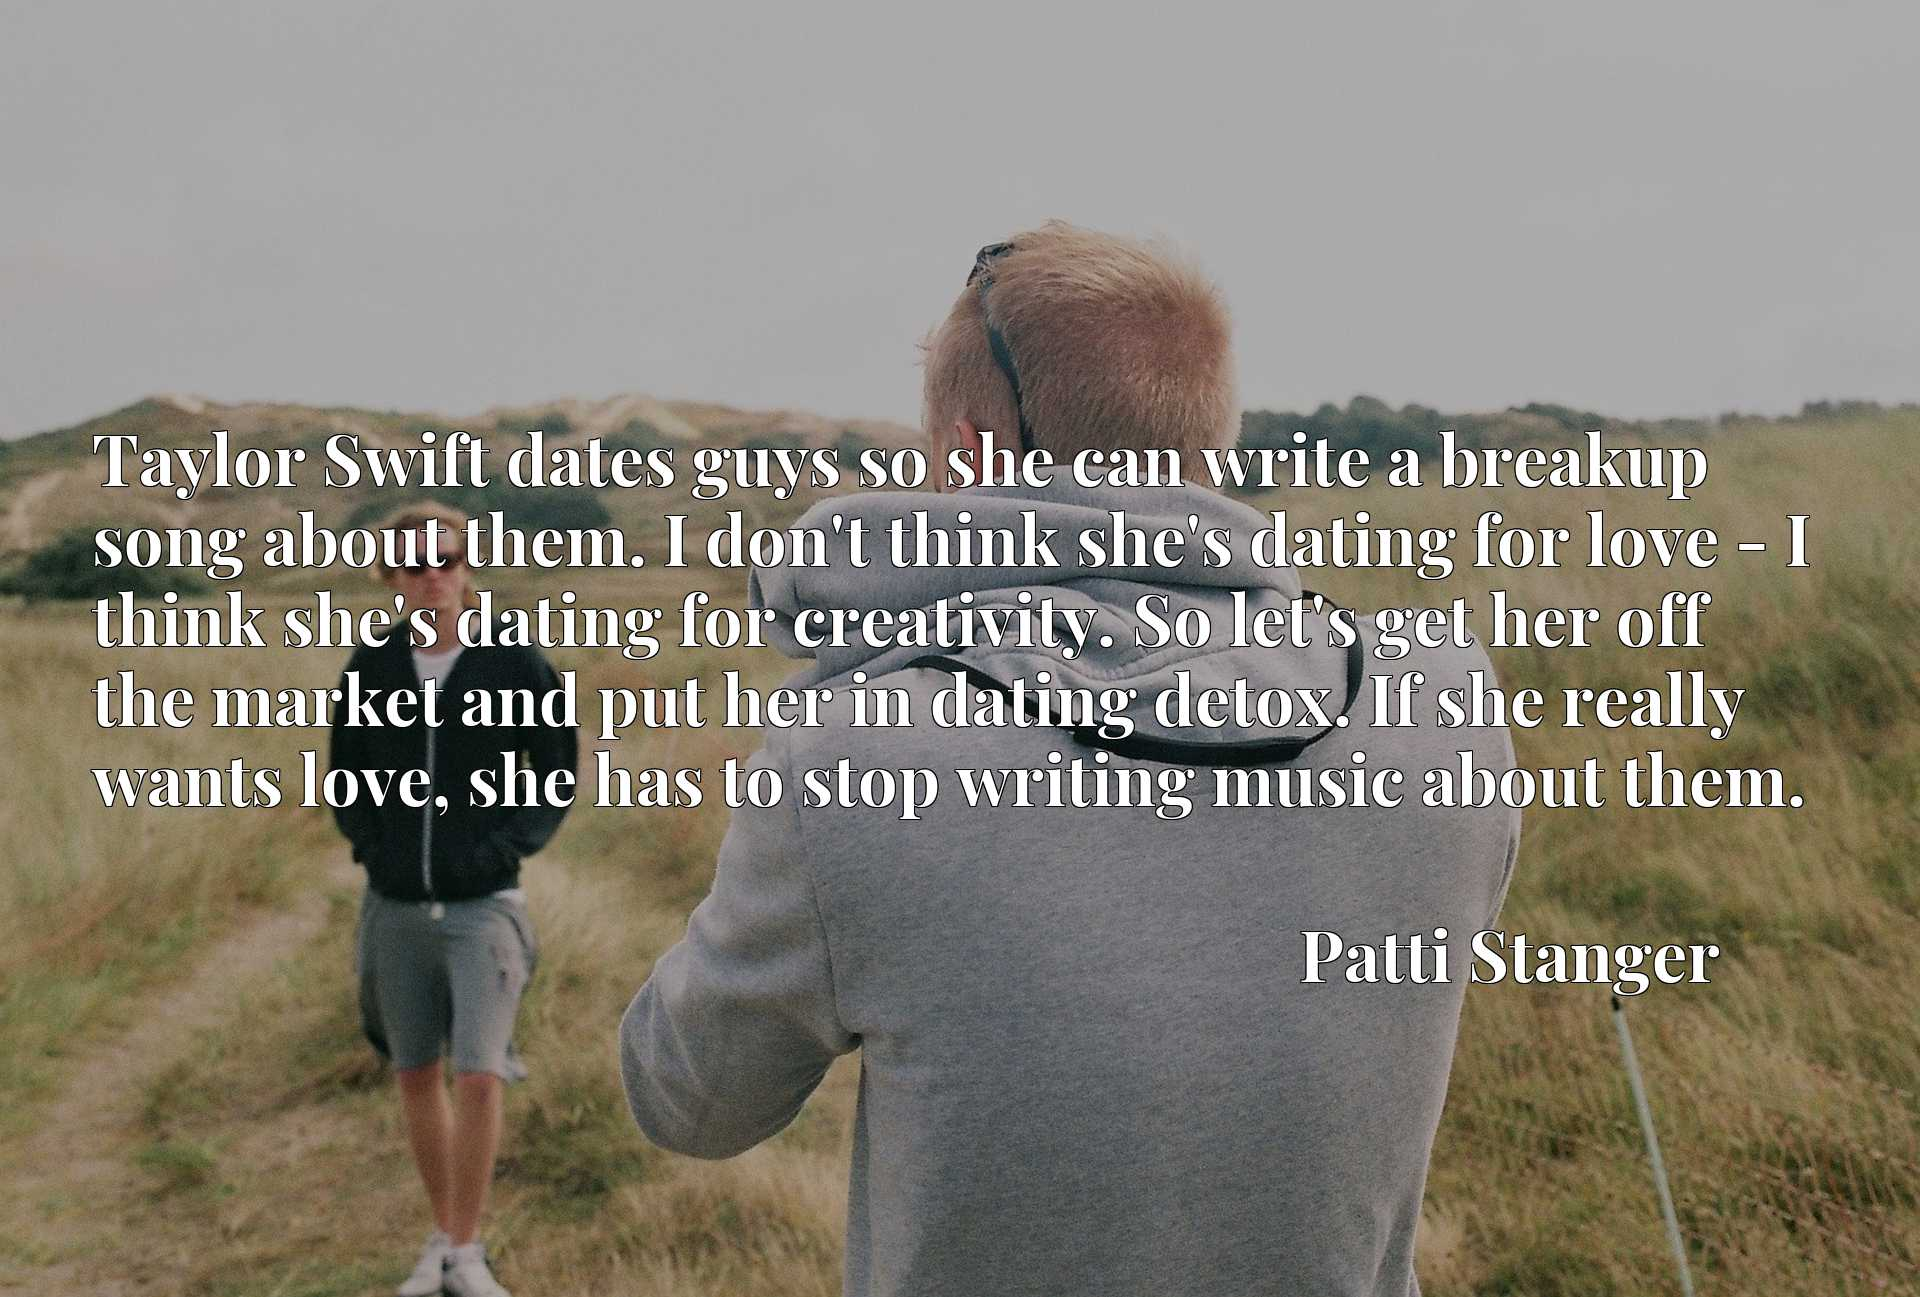 Taylor Swift dates guys so she can write a breakup song about them. I don't think she's dating for love - I think she's dating for creativity. So let's get her off the market and put her in dating detox. If she really wants love, she has to stop writing music about them.